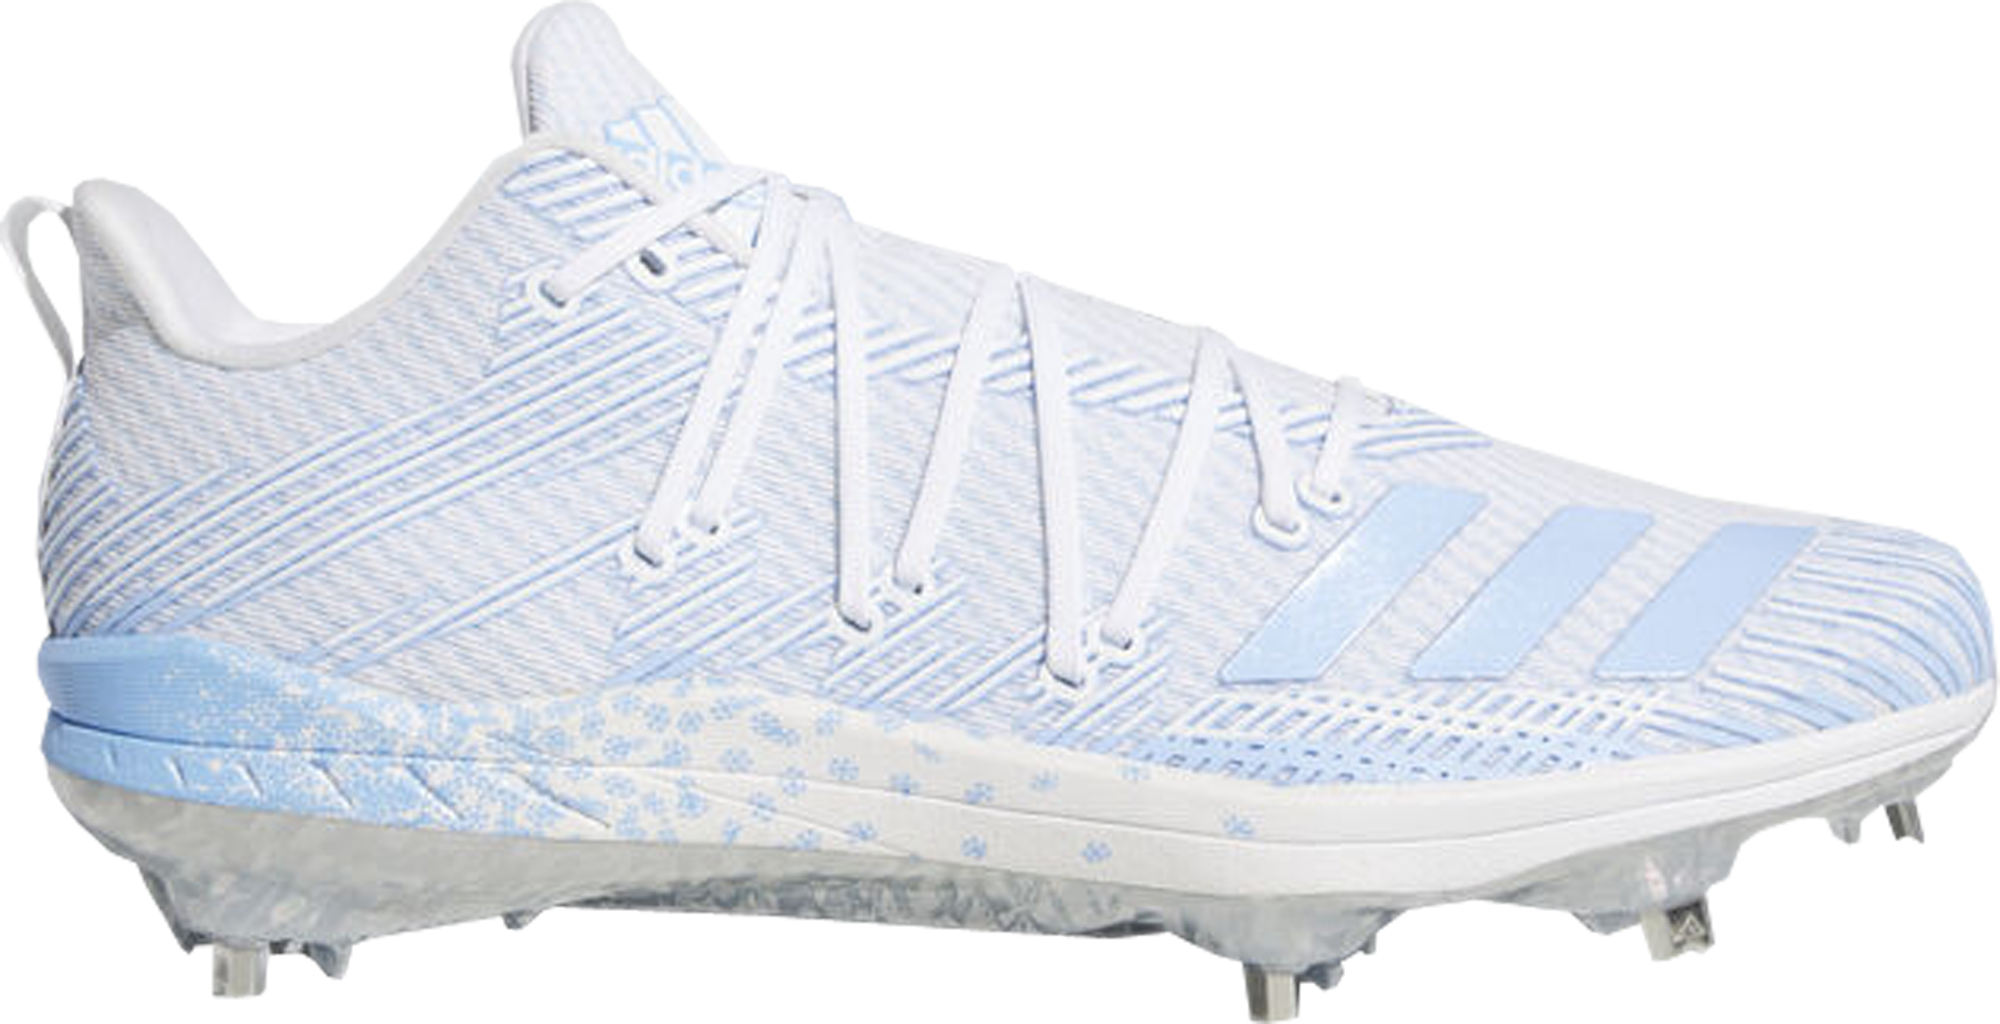 adidas Afterburner 6 Iced Out Pack - EE4135